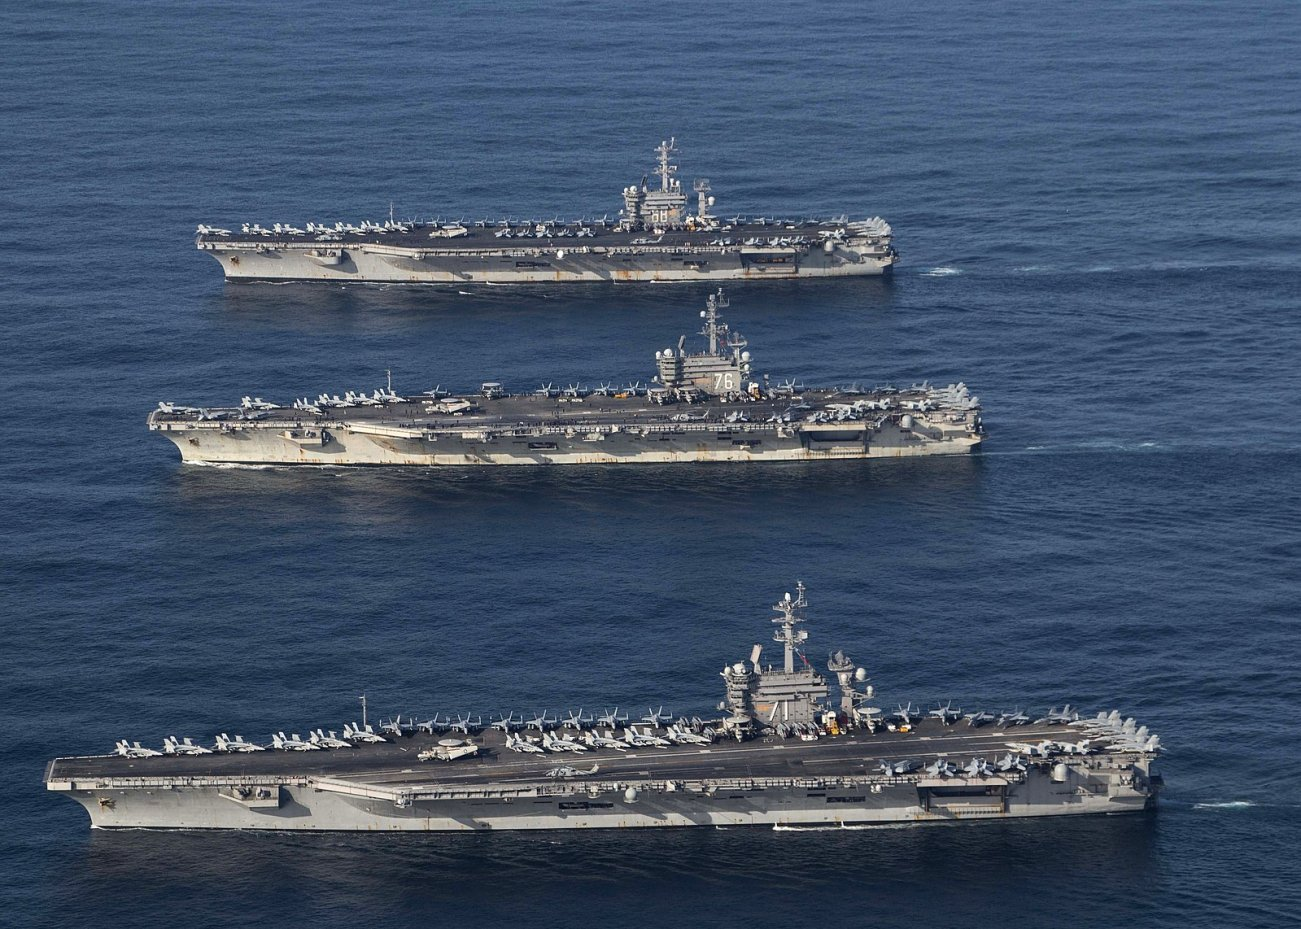 How to Stop a U.S. Navy Aircraft Carrier: Take Out the Toilets